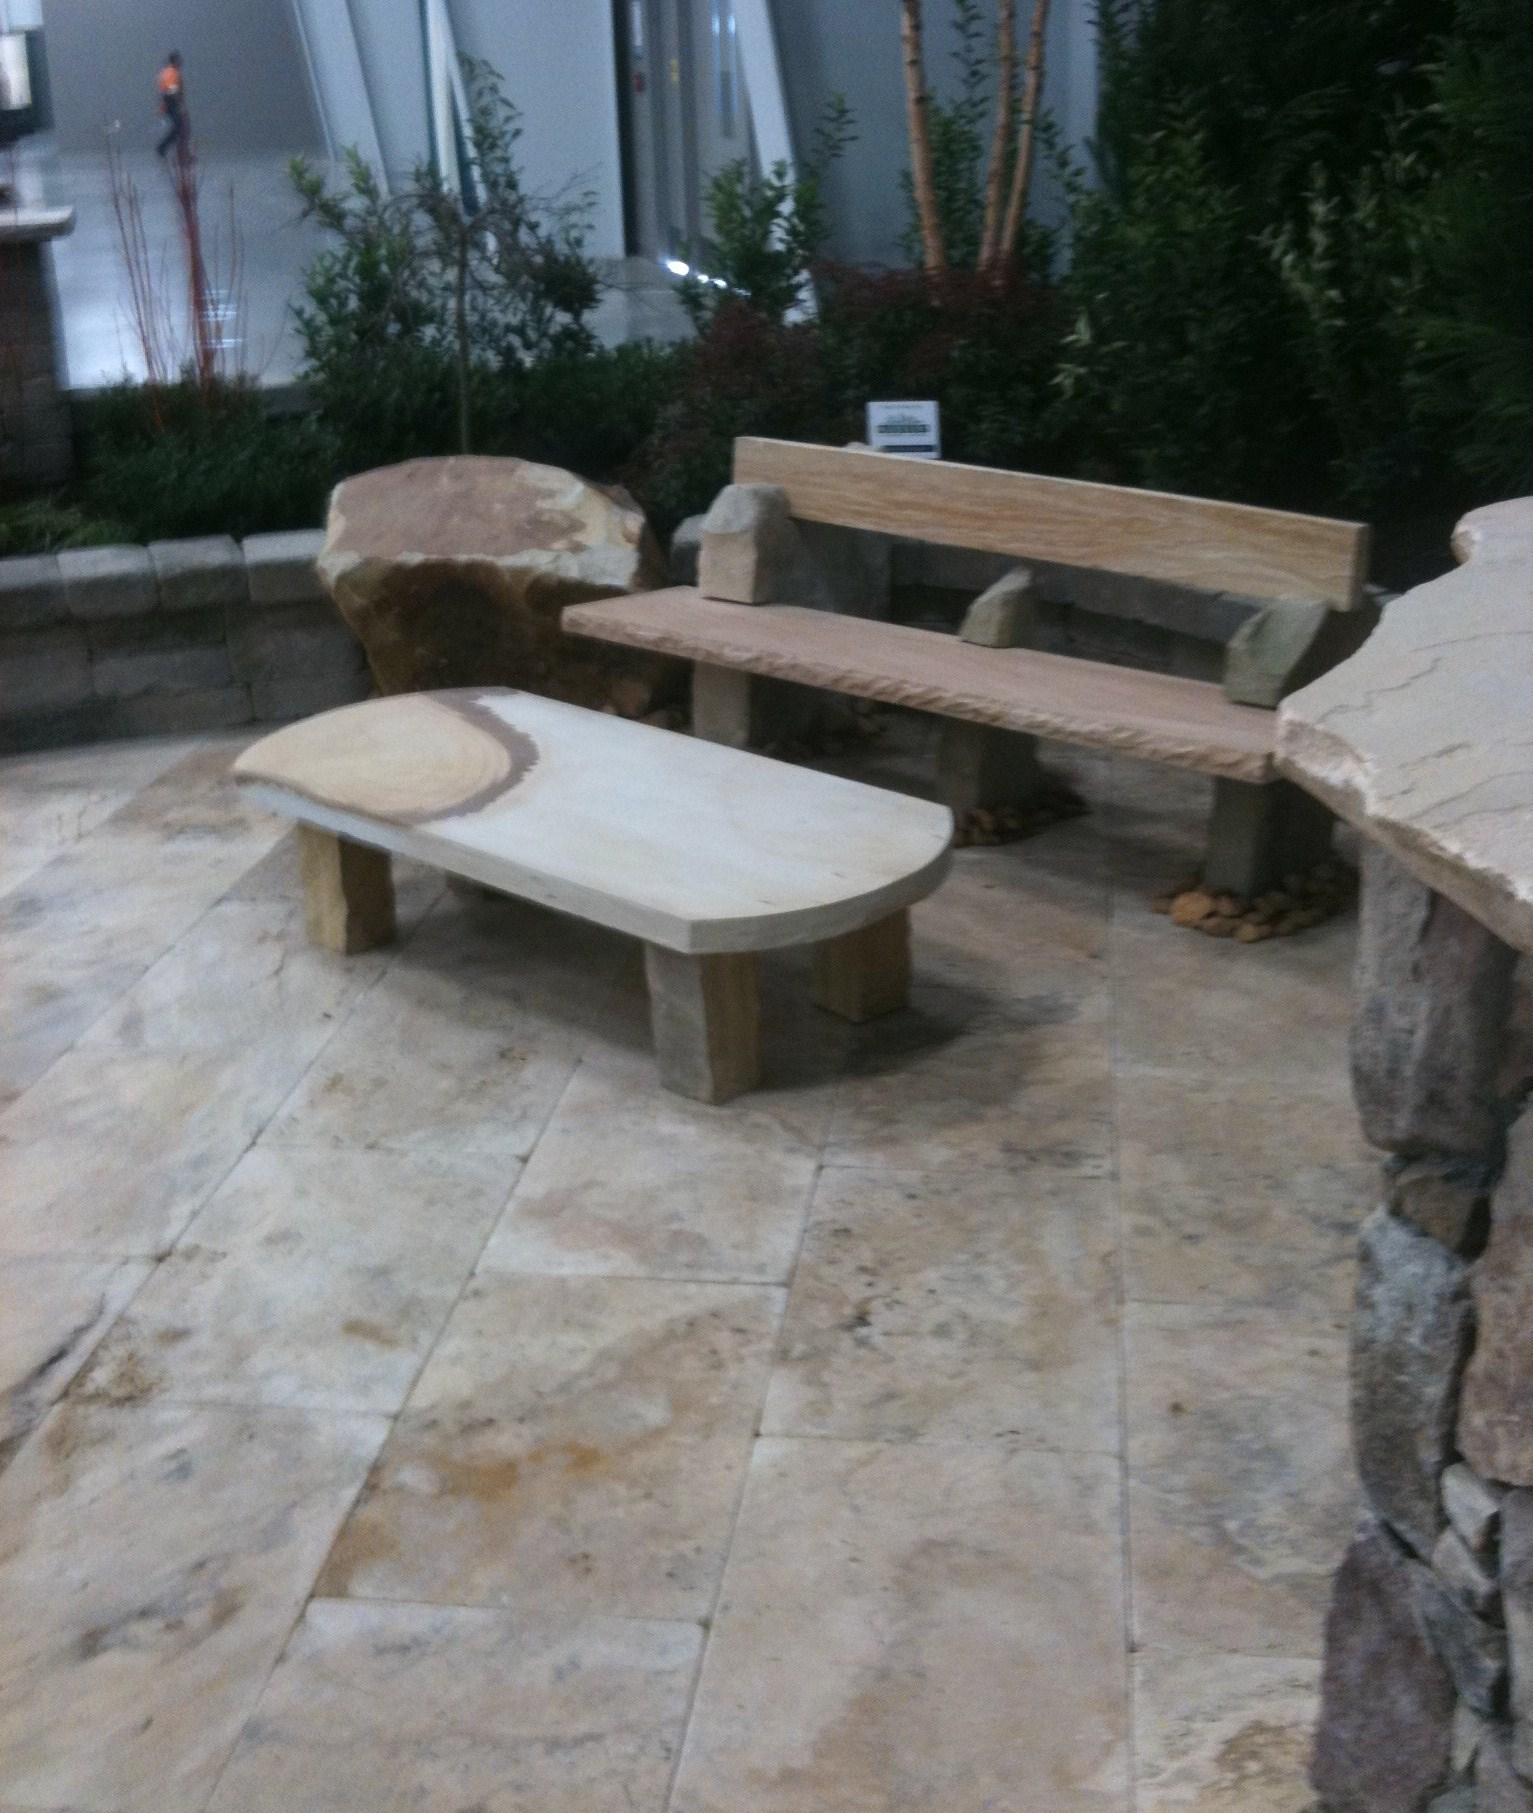 Stone And Wood Bench: You Have Questions…We Have Answers